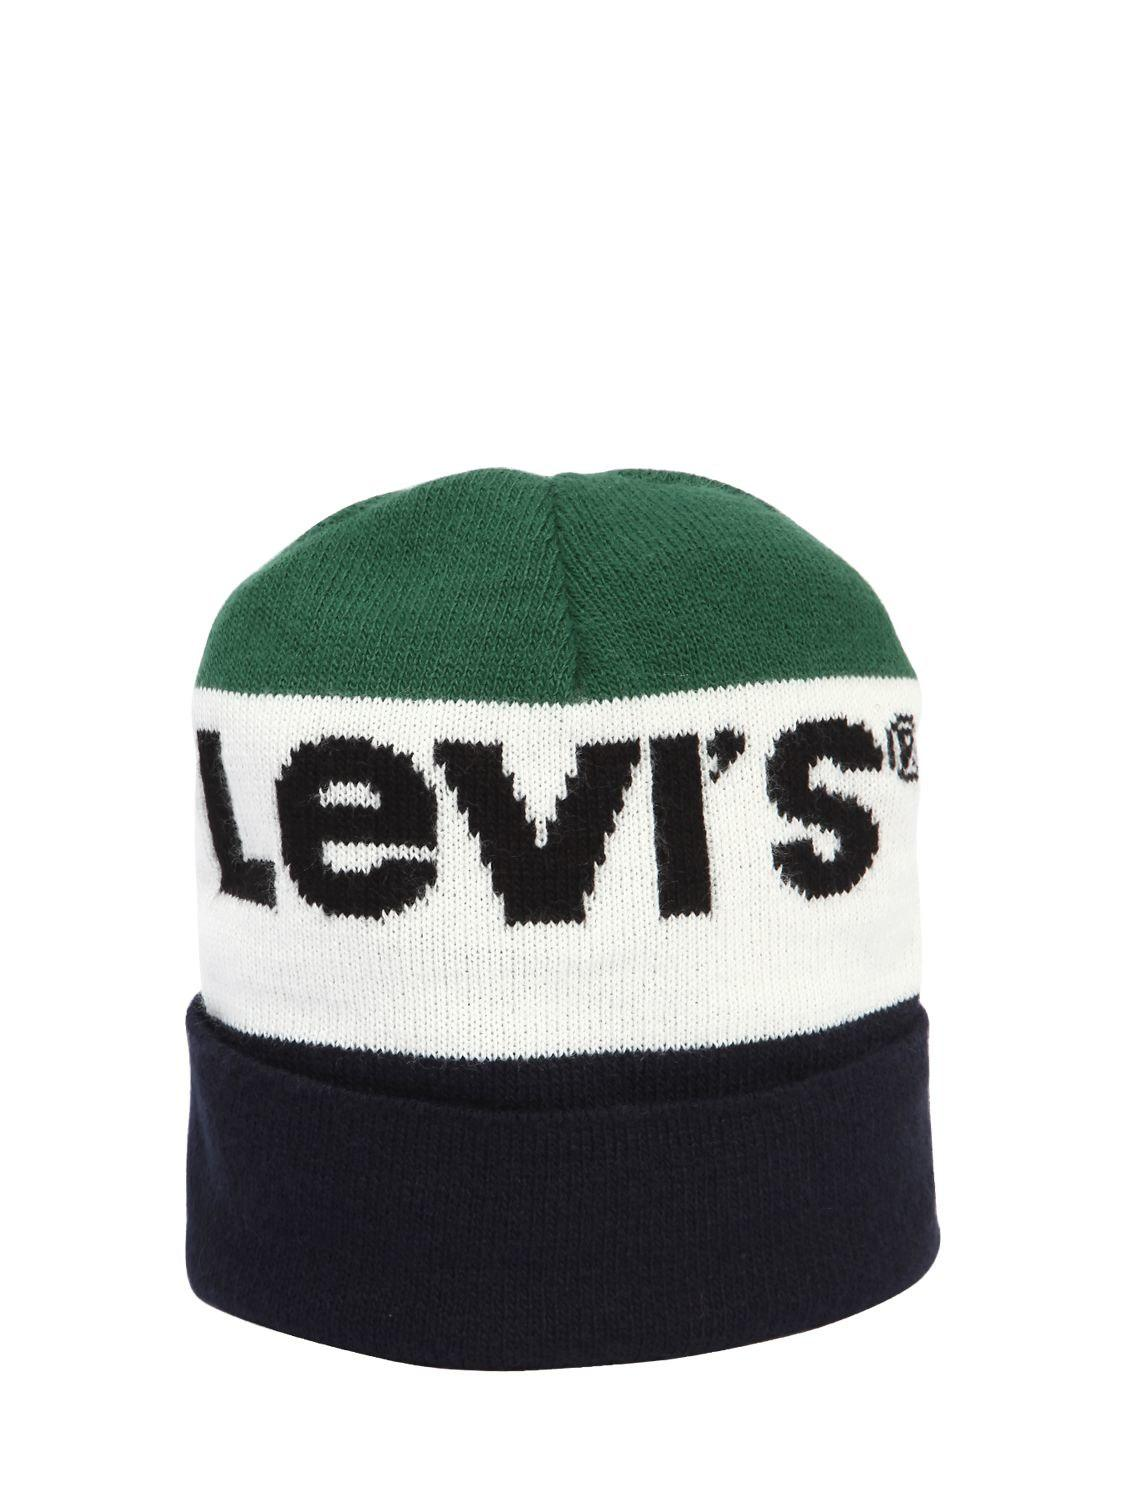 84610ce44cc Levi s Knit Beanie Hat in Green for Men - Lyst